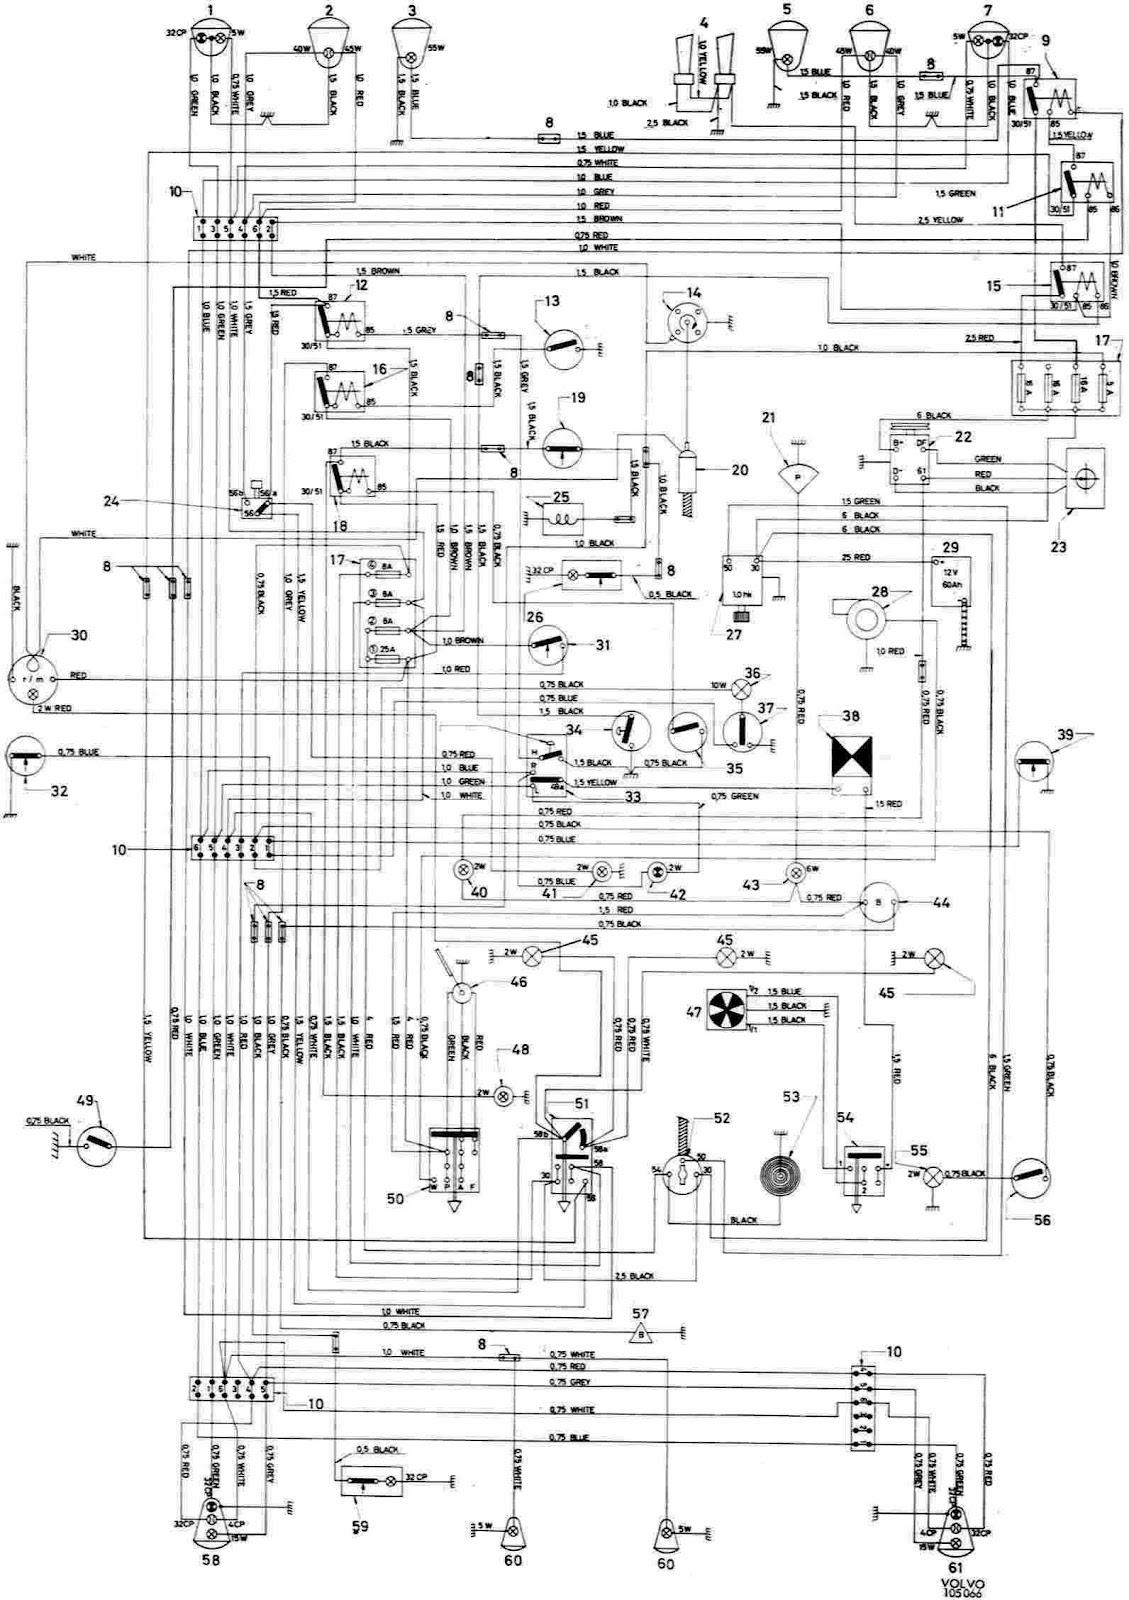 Volvo+123+GT+Complete+Wiring+Diagram 2005 volvo s40 wiring diagram volvo s40 steering diagram \u2022 wiring Volvo 240 Wiring Harness Routing at gsmx.co